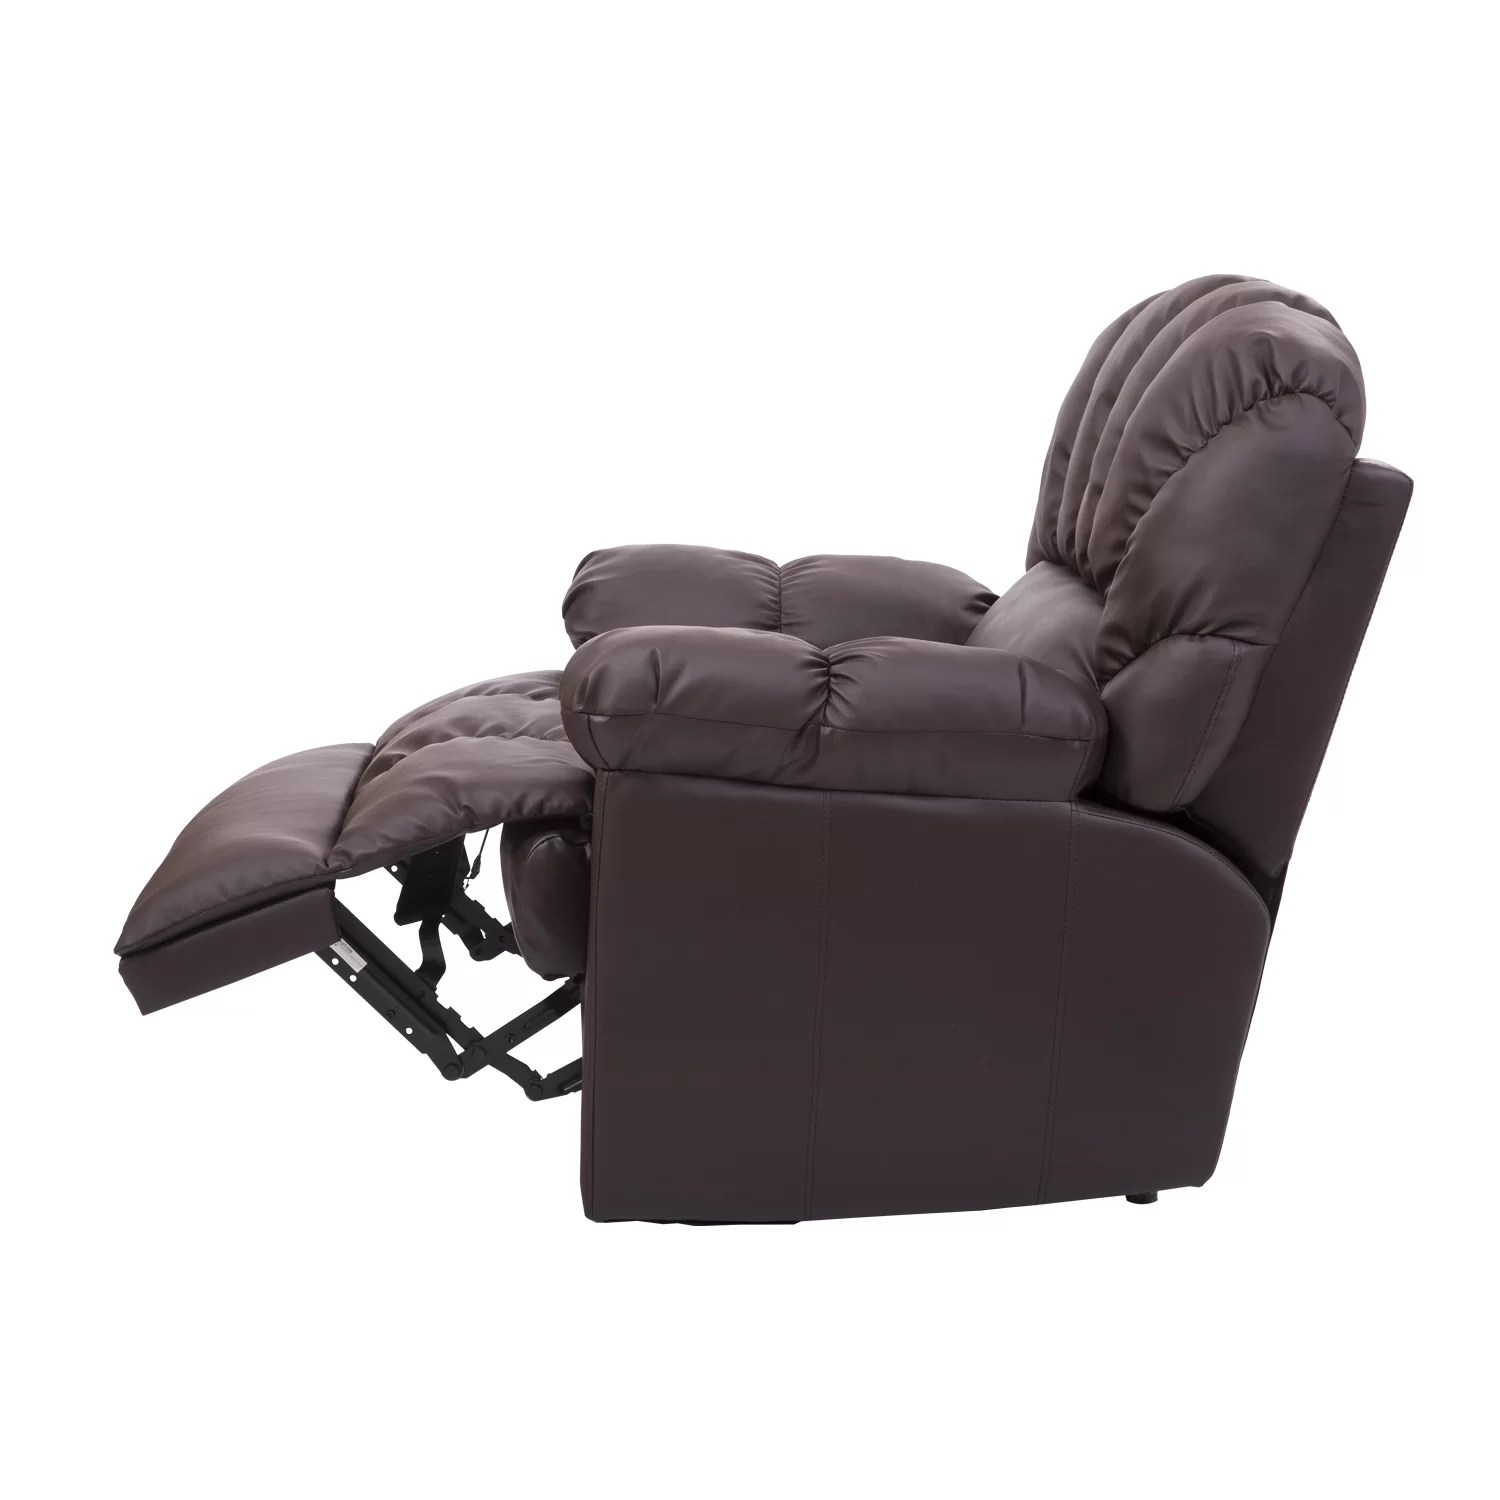 Vibrator Chair Outsunny Homcom Vibrating Massage Recliner And Reviews Wayfair